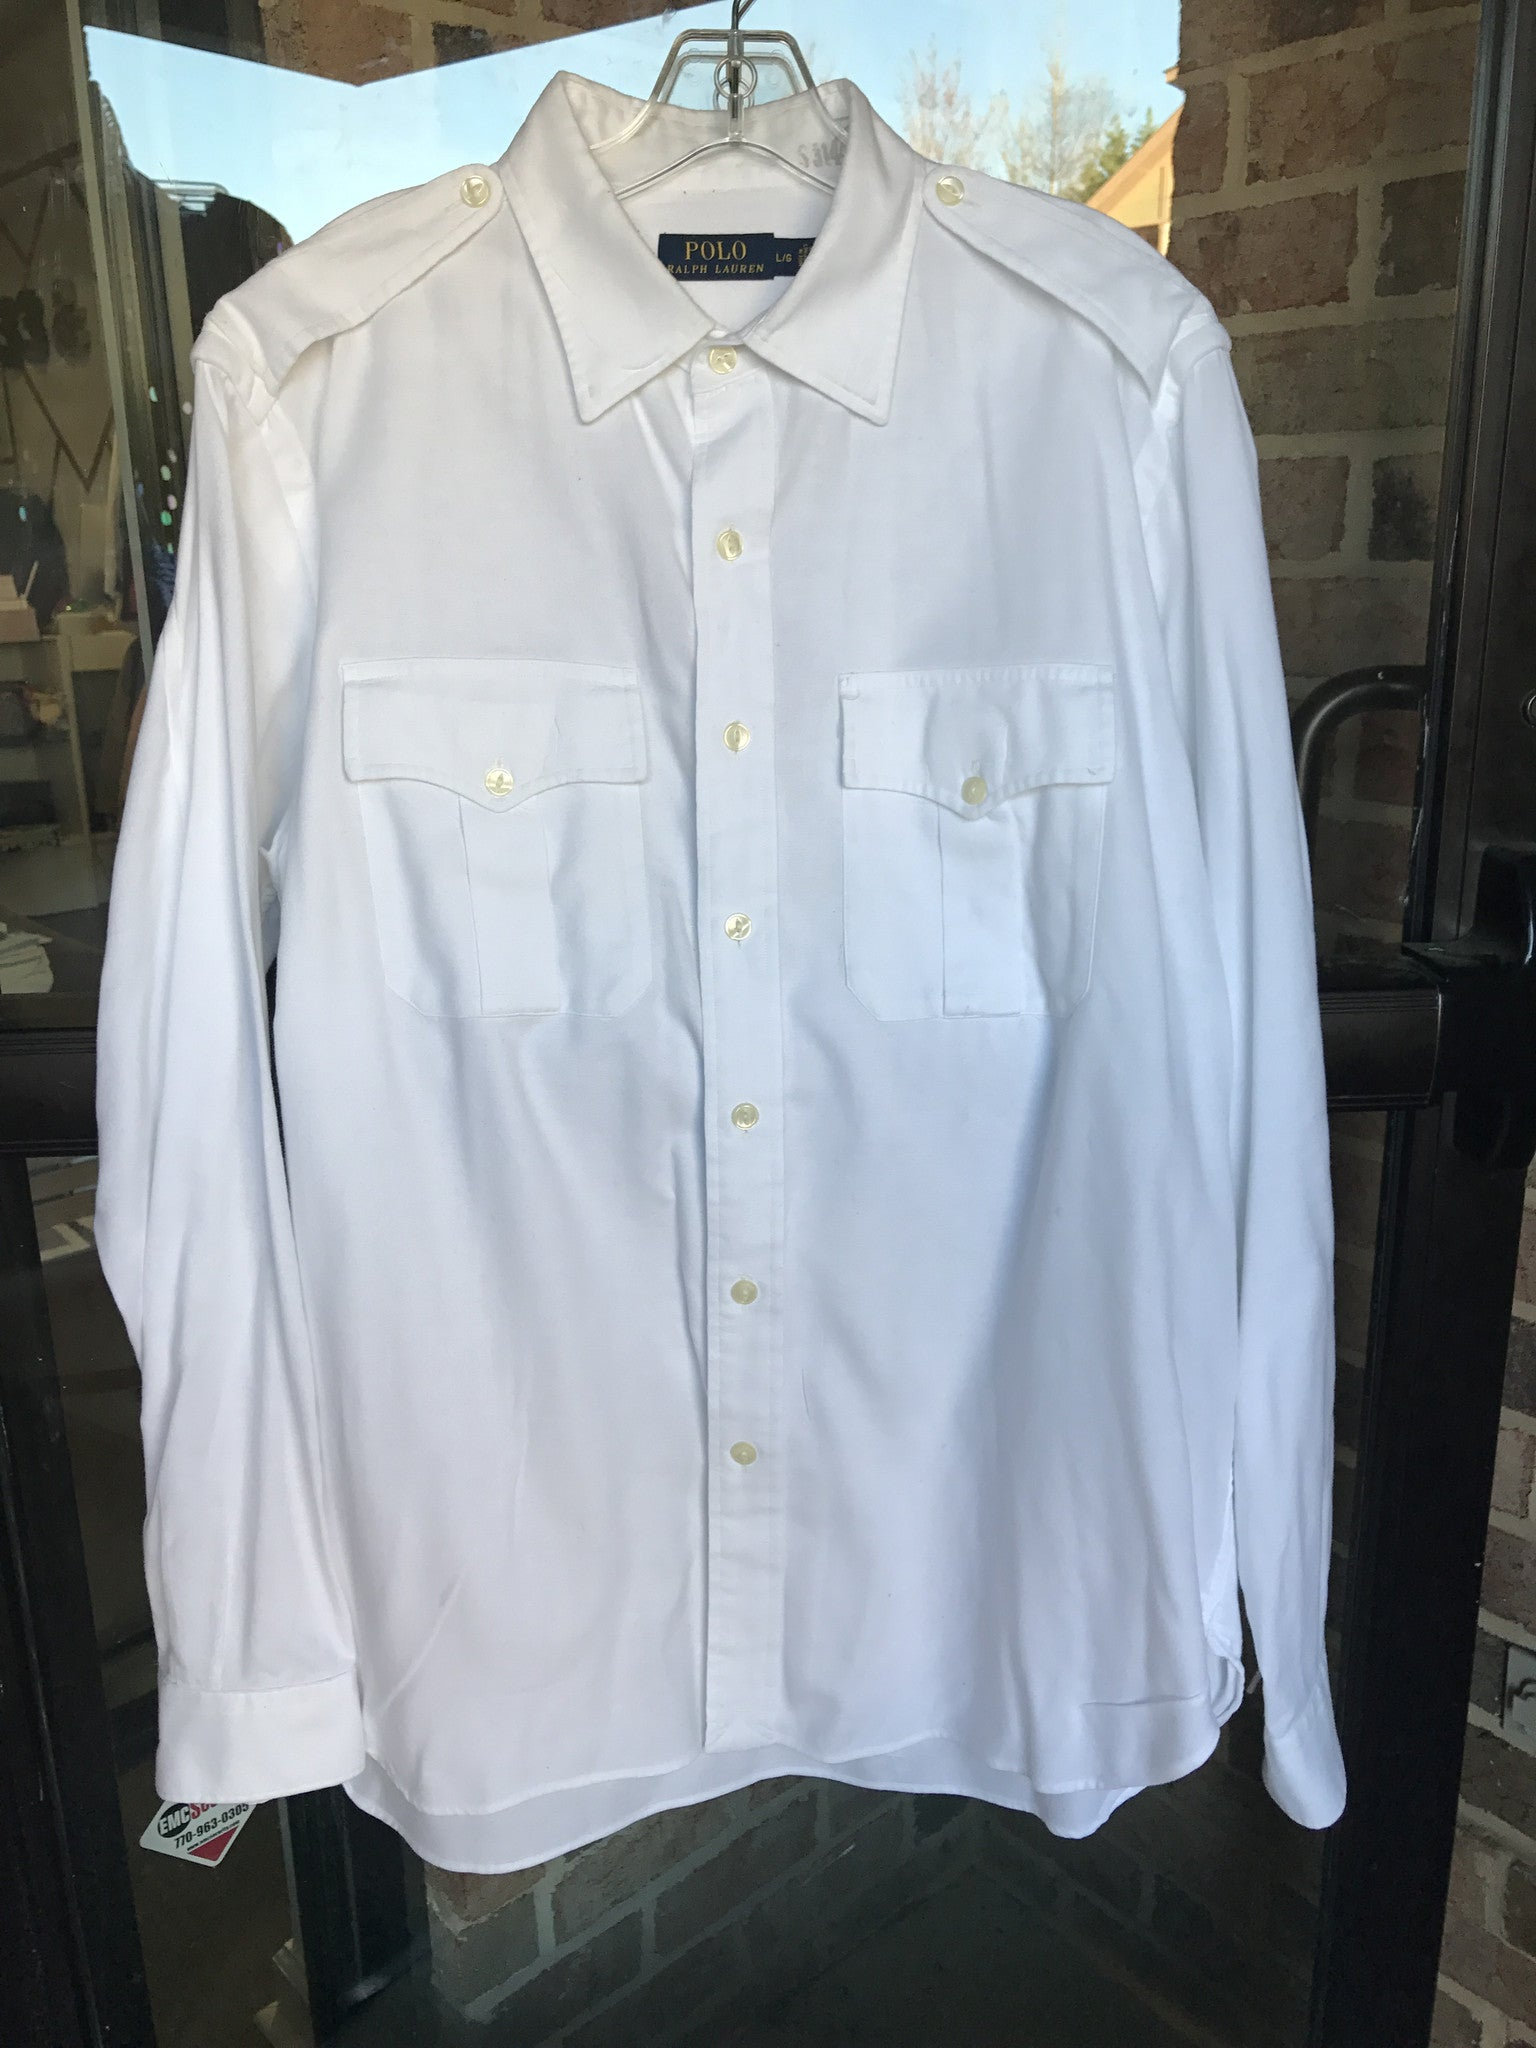 Polo by Ralph Lauren White Shirt: Sz L